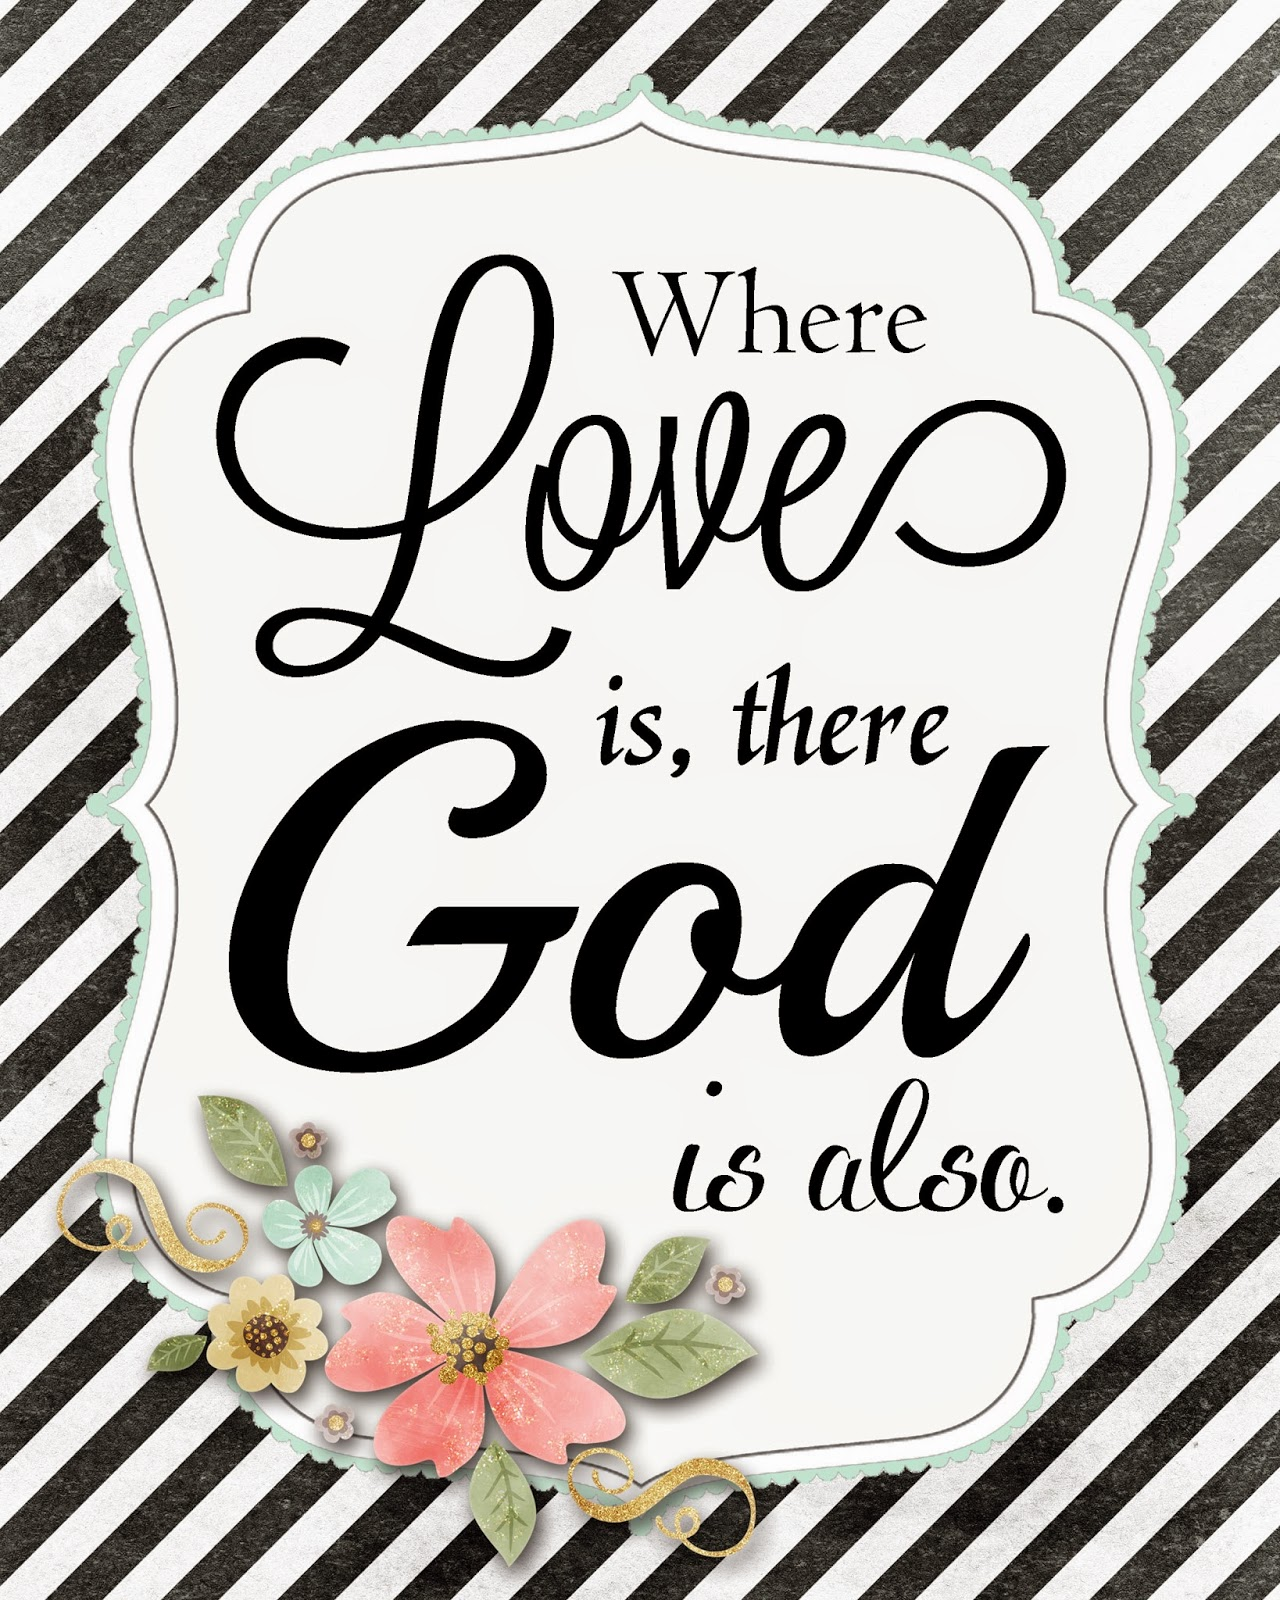 God Is Love: A Pocket Full Of LDS Prints: Where Love Is, There God Is